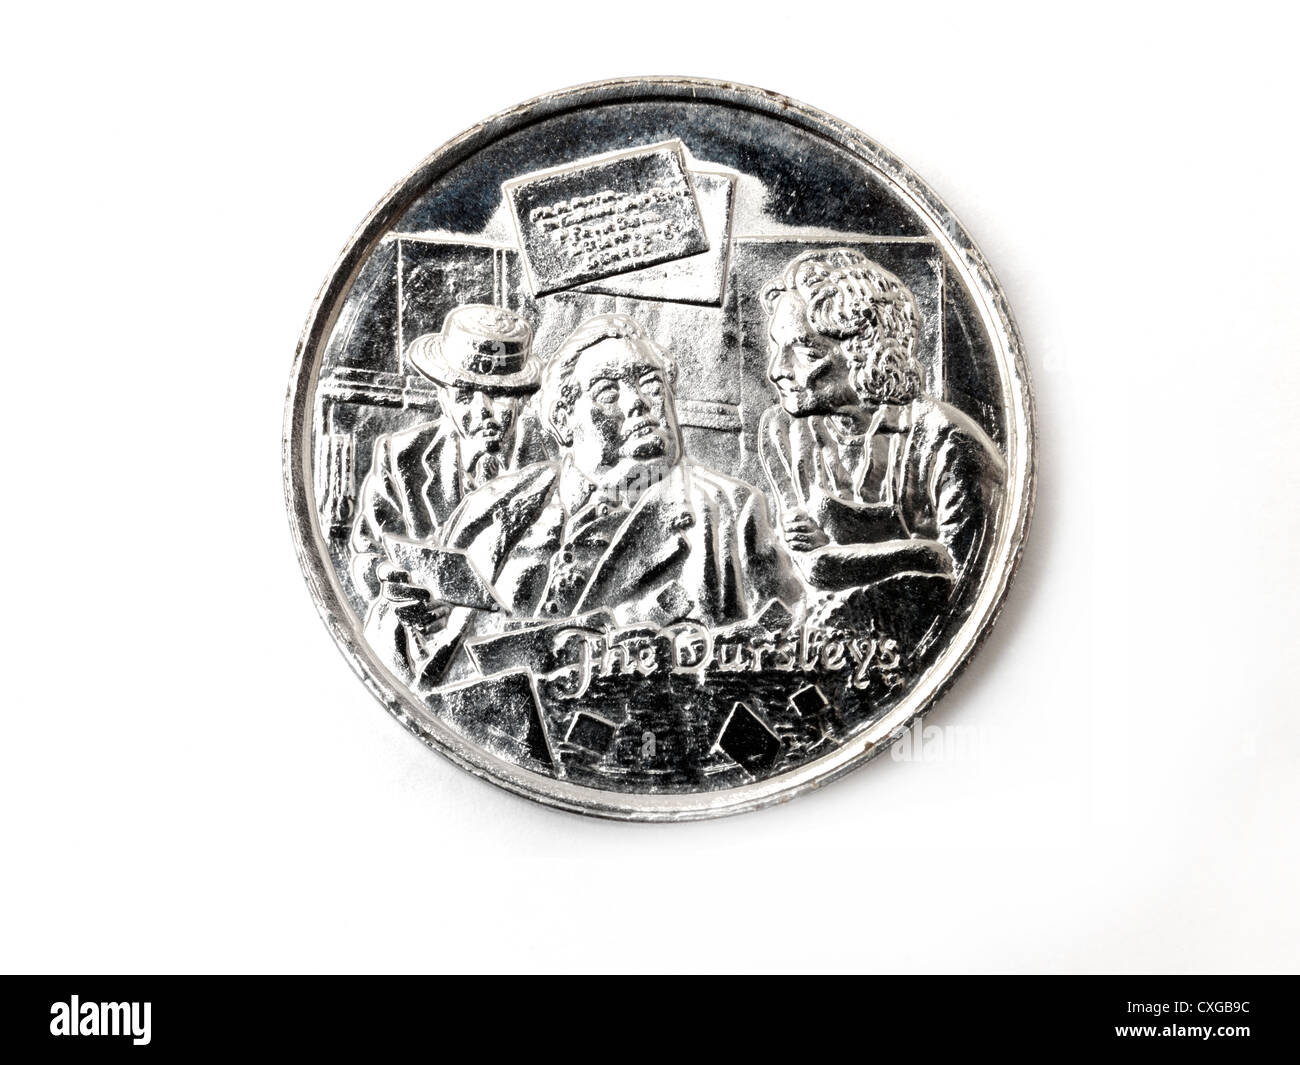 Harry Potter And The philosopher's Stone Collectors Coin Depicting The Dursleys - Stock Image